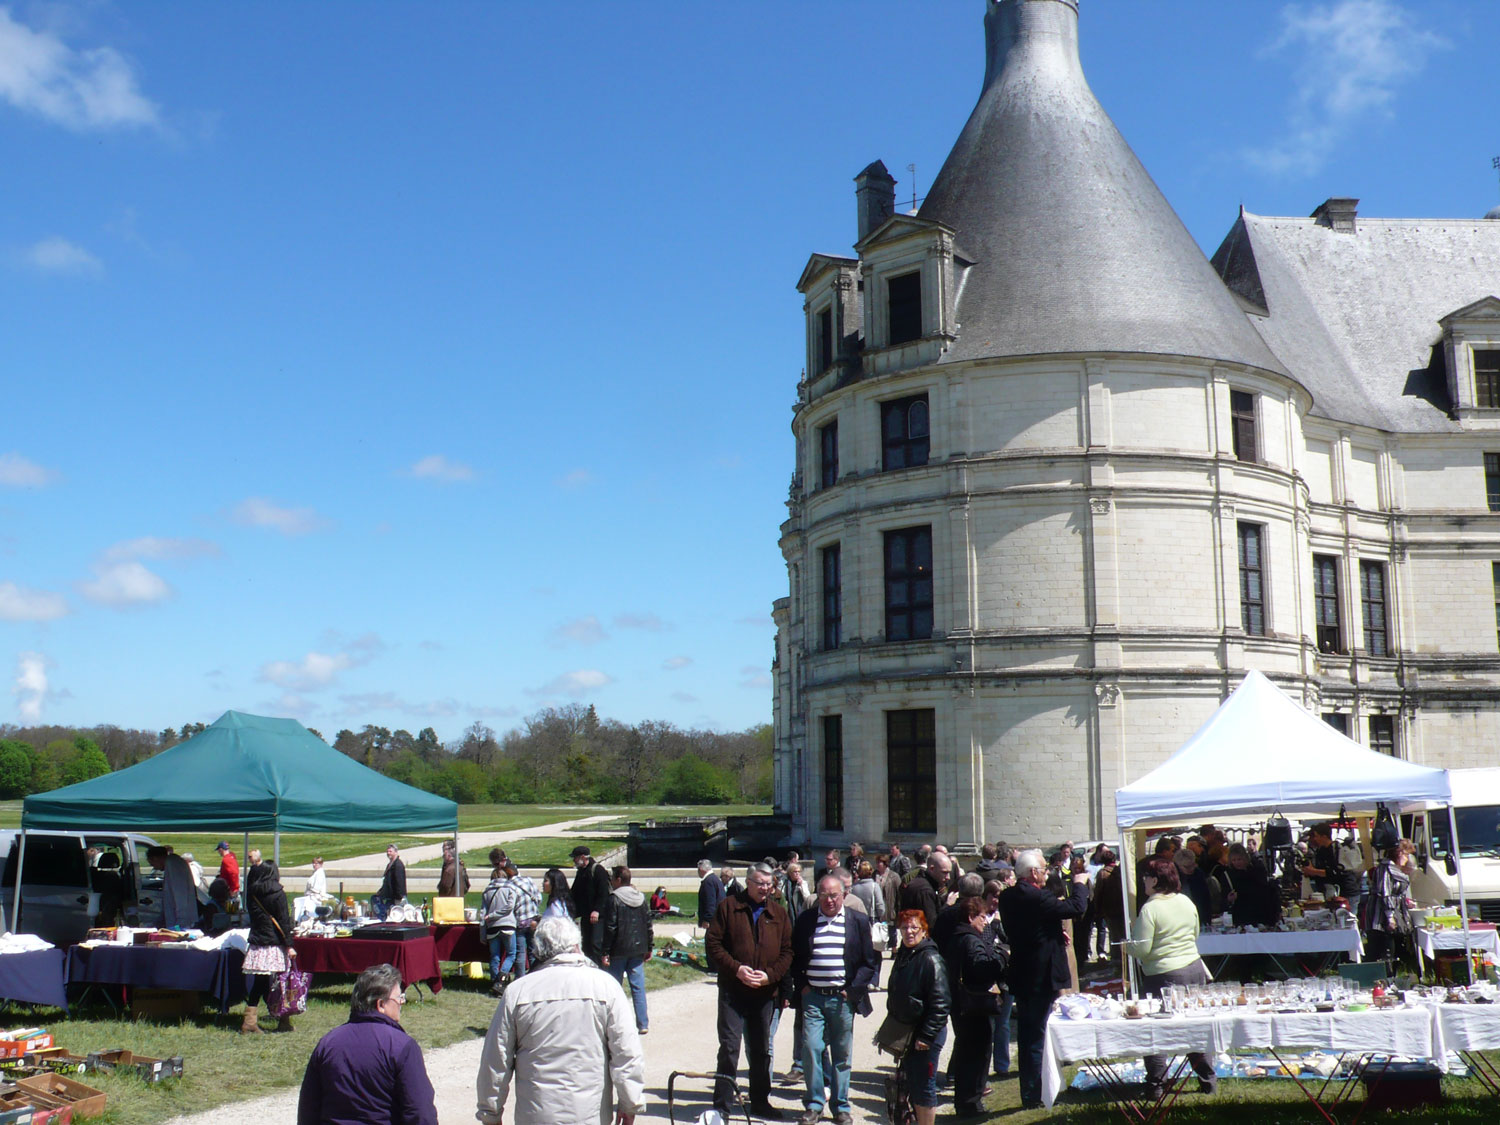 The brocante in Chambord two years ago on a perfect day